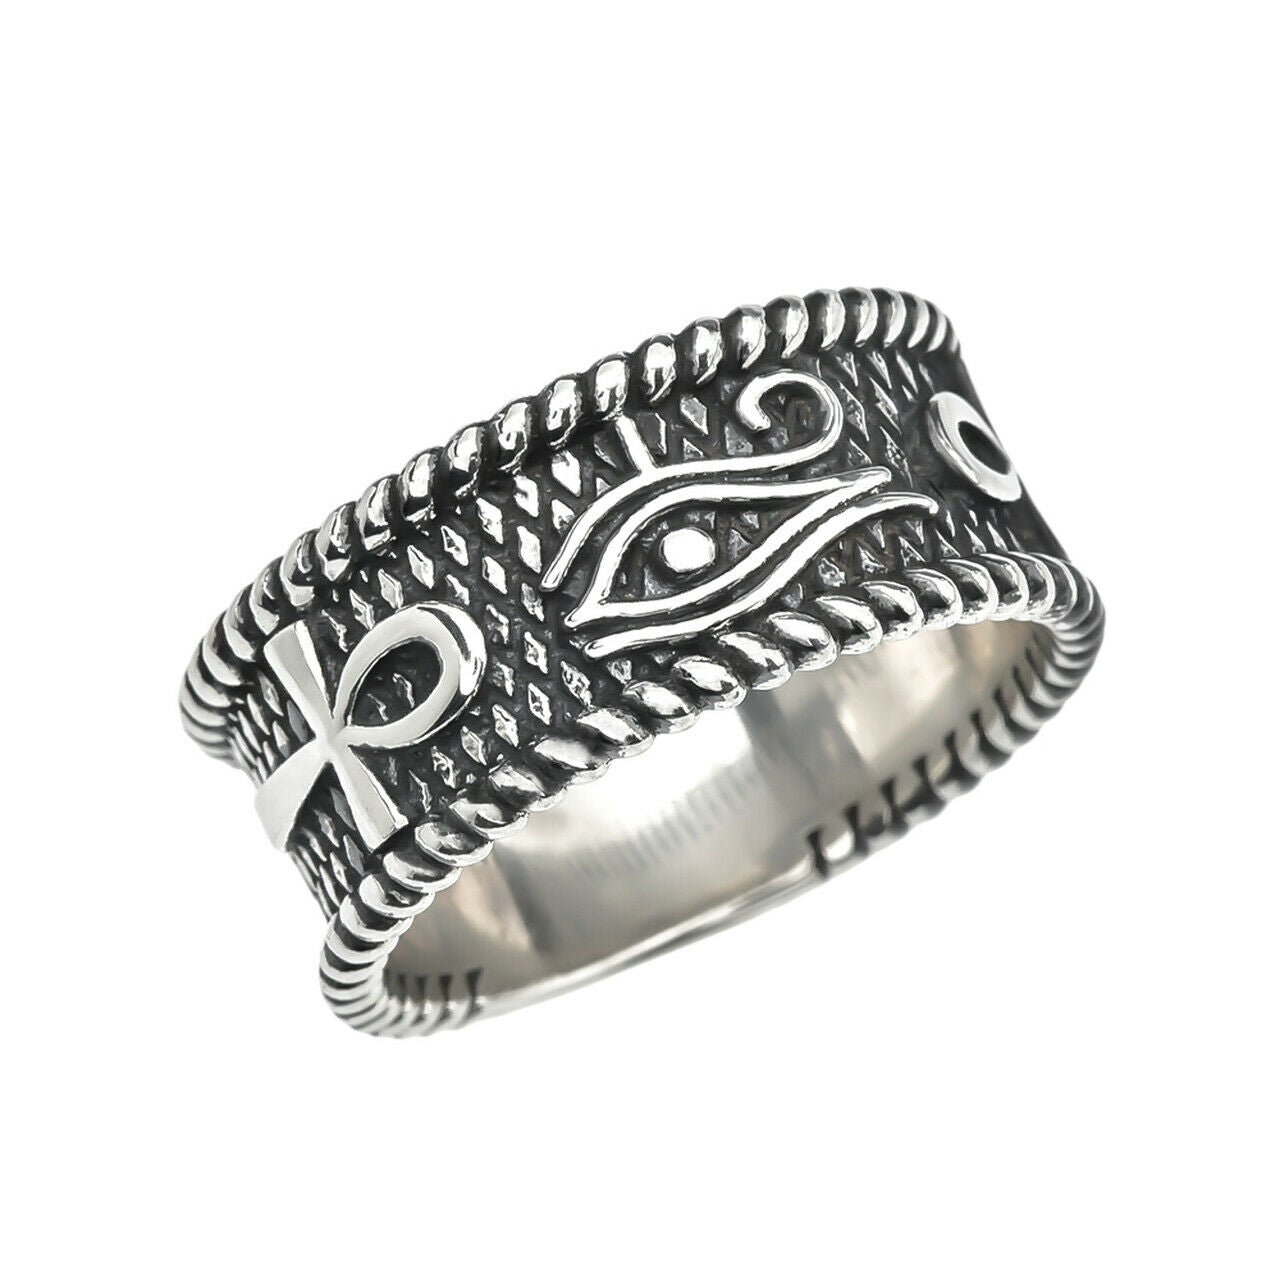 Eye of Horus with Egyptian Ankh Crosses 925 Sterling Silver Unisex Ring Any Size